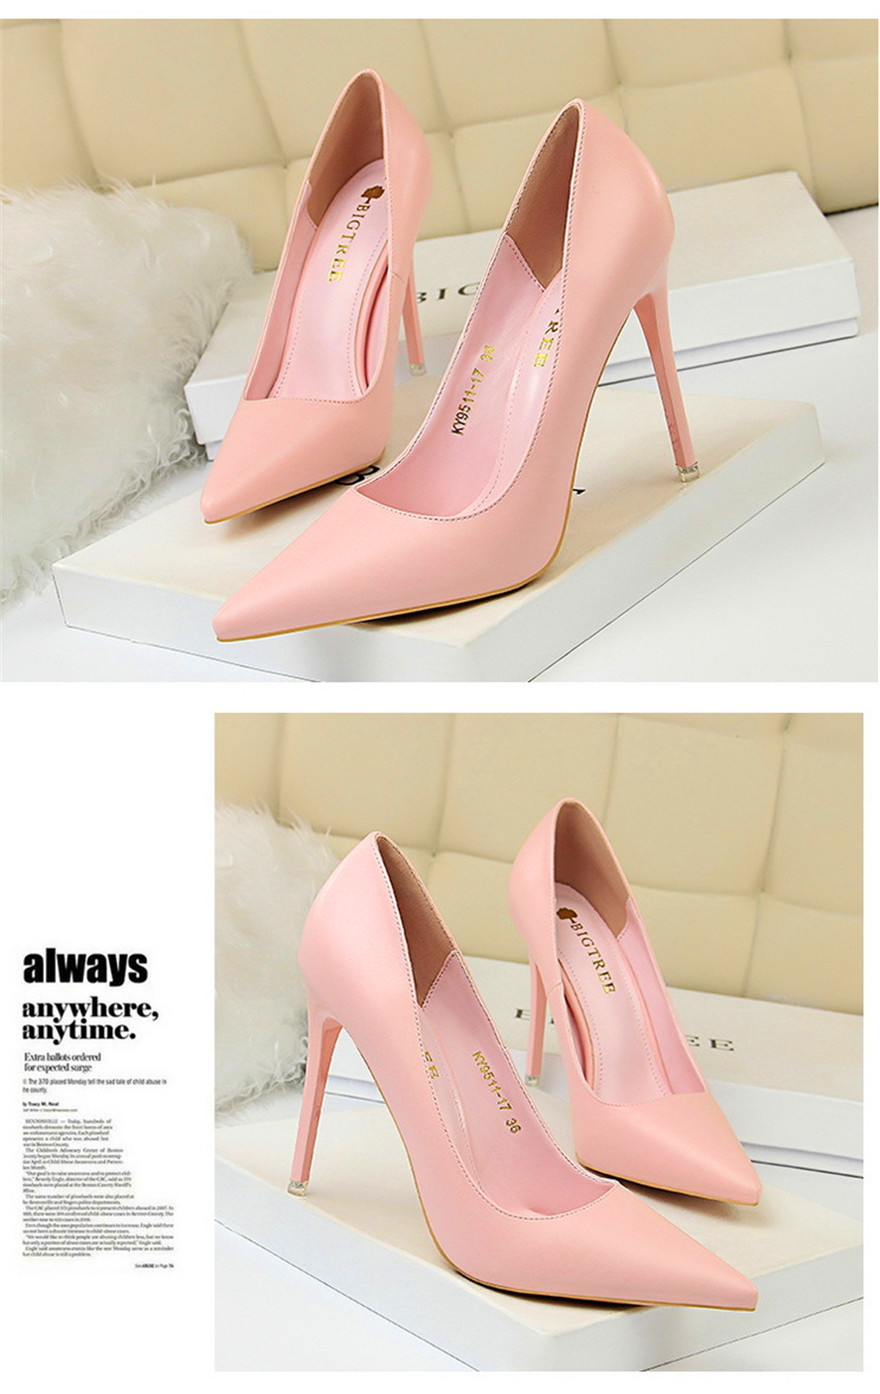 BIGTREE Soft Leather Shallow Fashion Women's High Heels Shoes Candy Colors Pointed Toe Women Pumps Show Thin Female Office Shoe 12